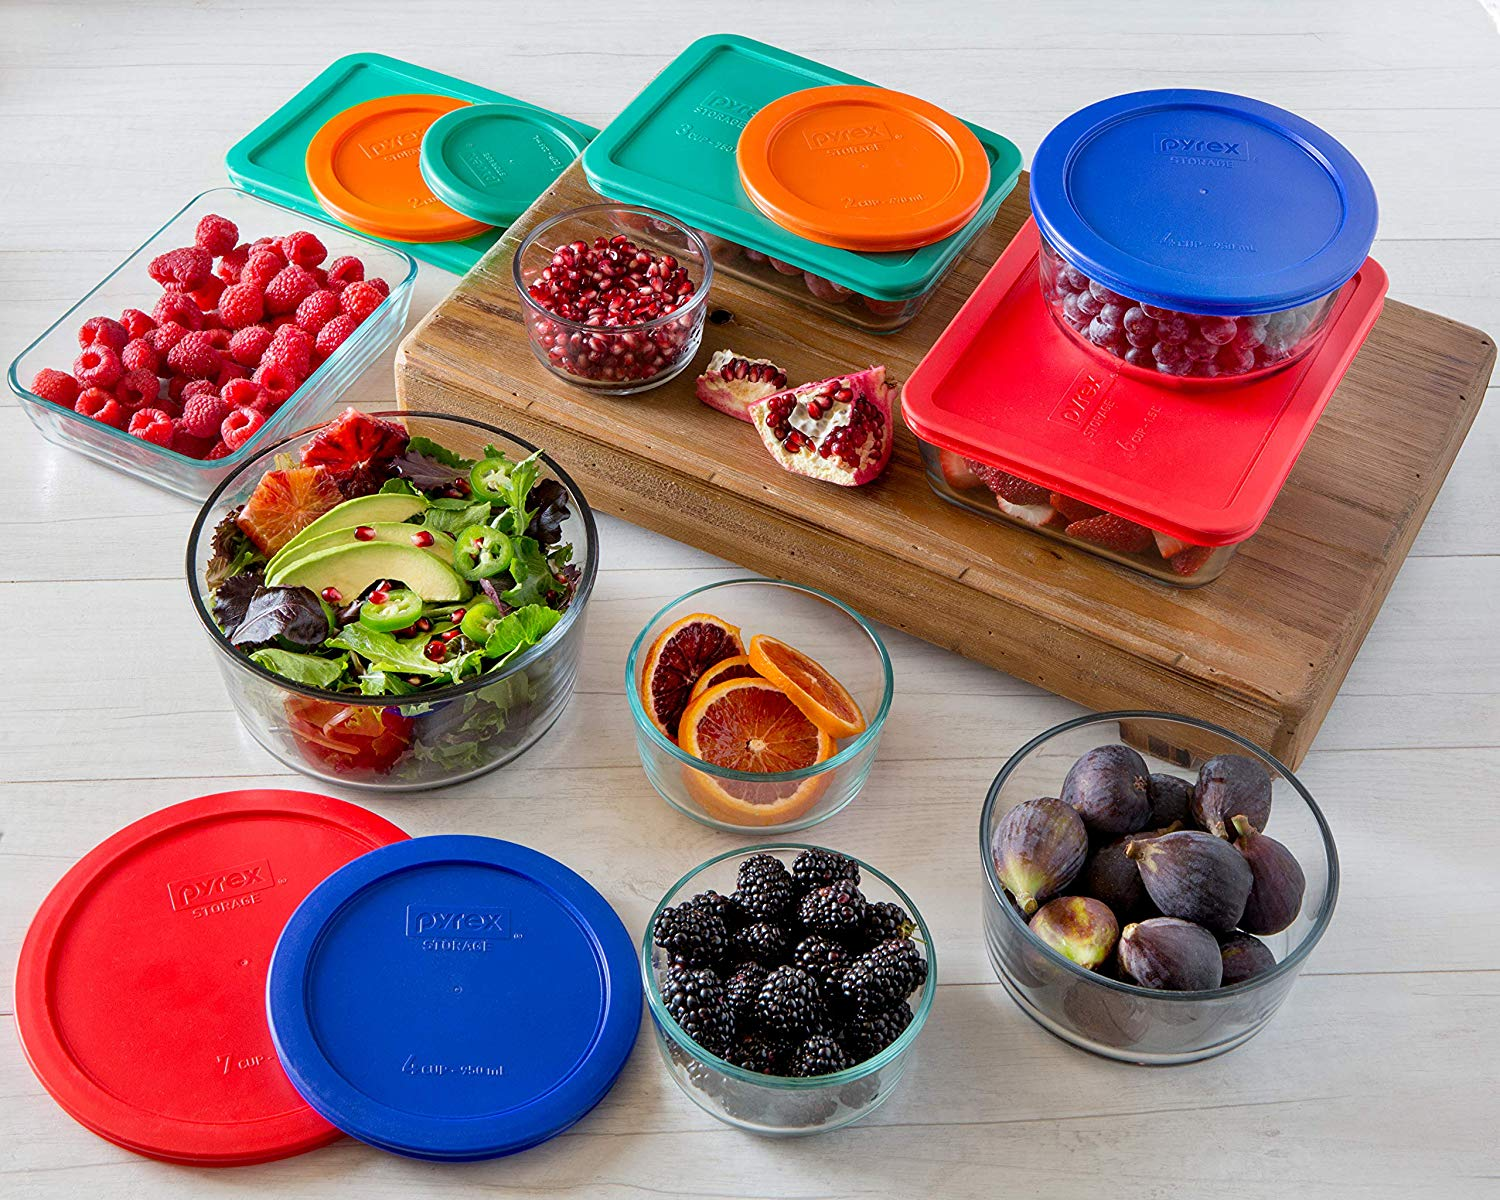 A large set of Pyrex containers filled with fruit.